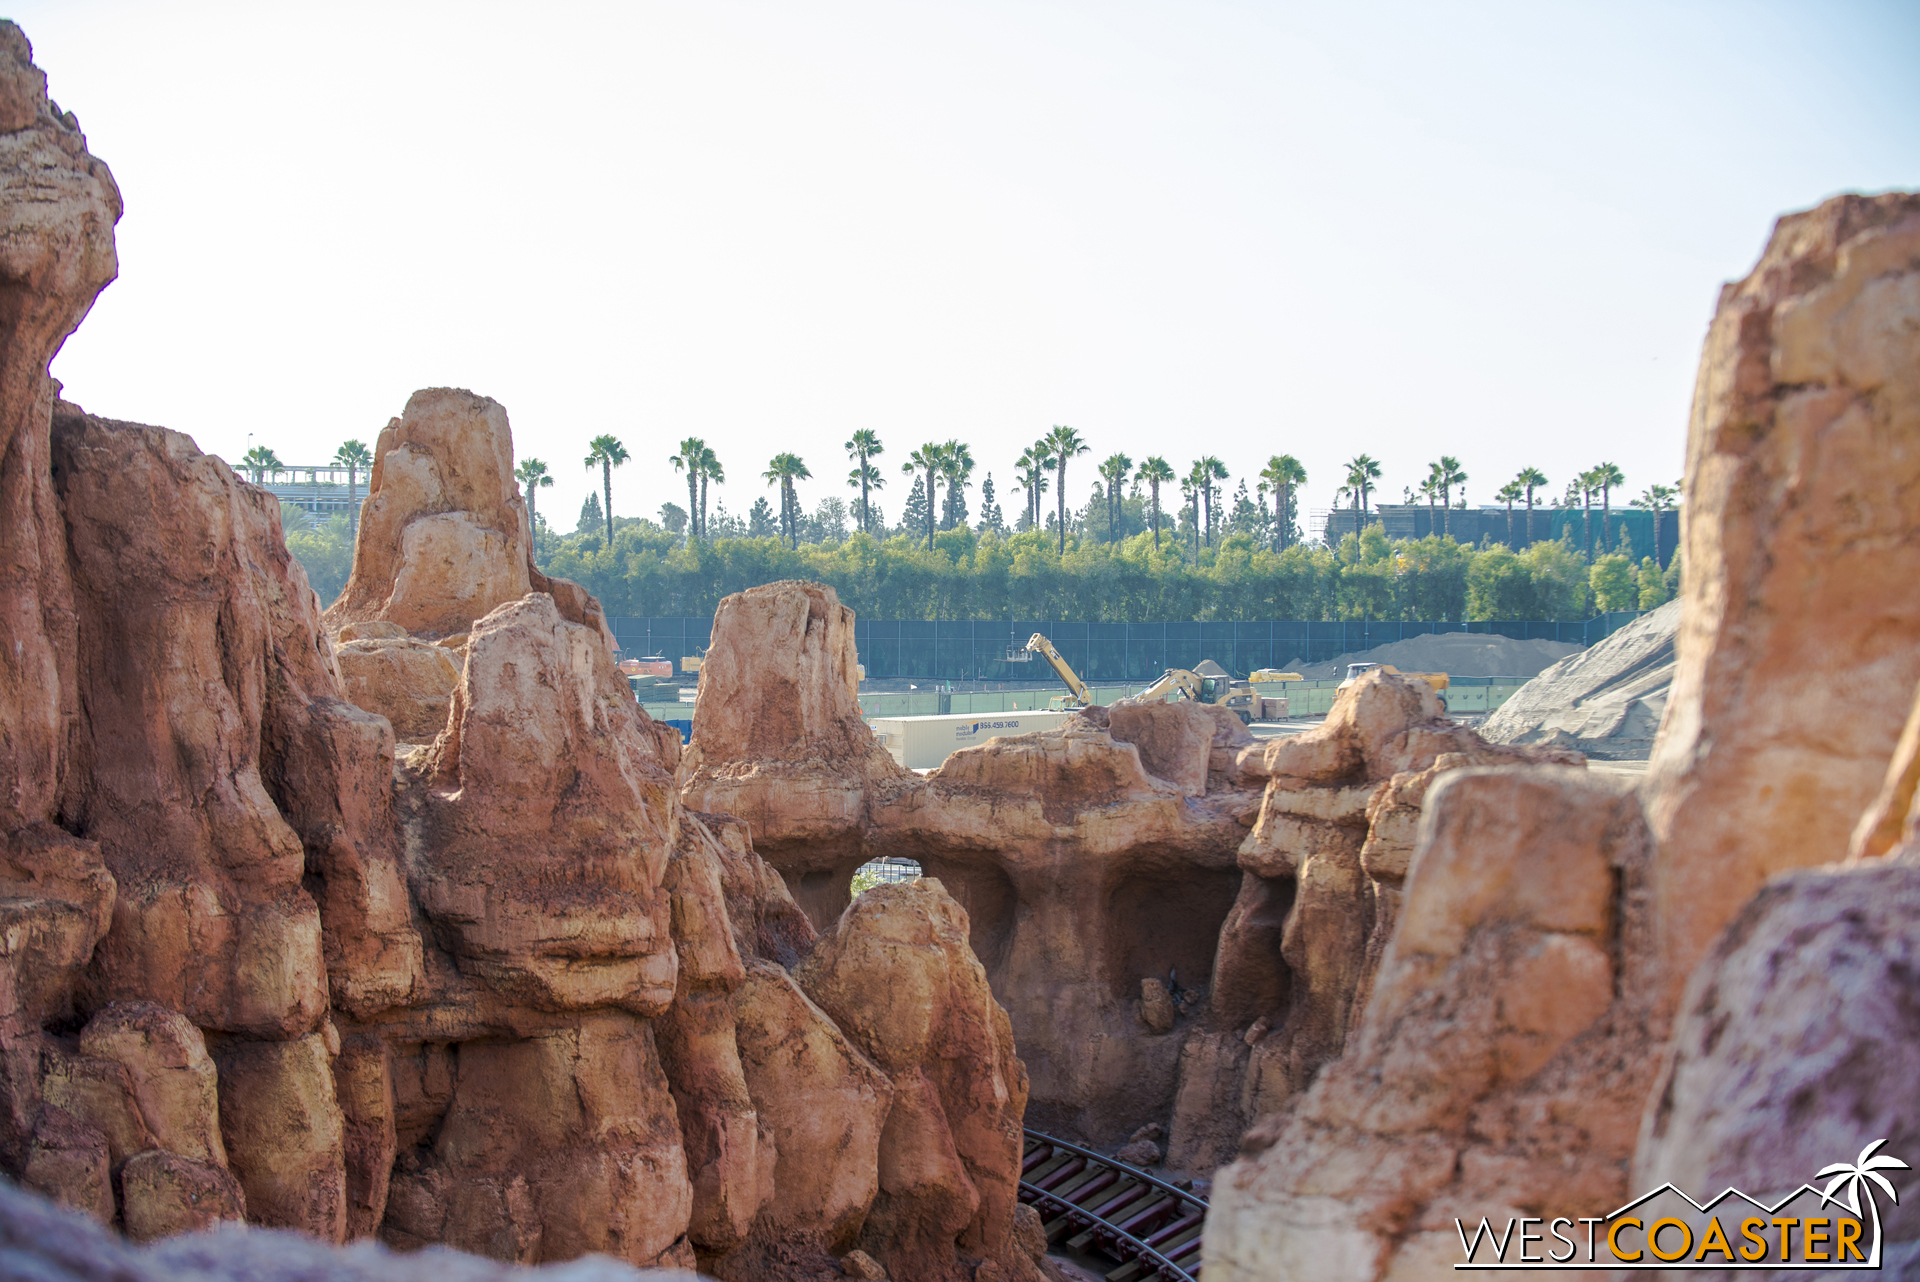 The view from the Big Thunder Mountain Railroad second lift hill.